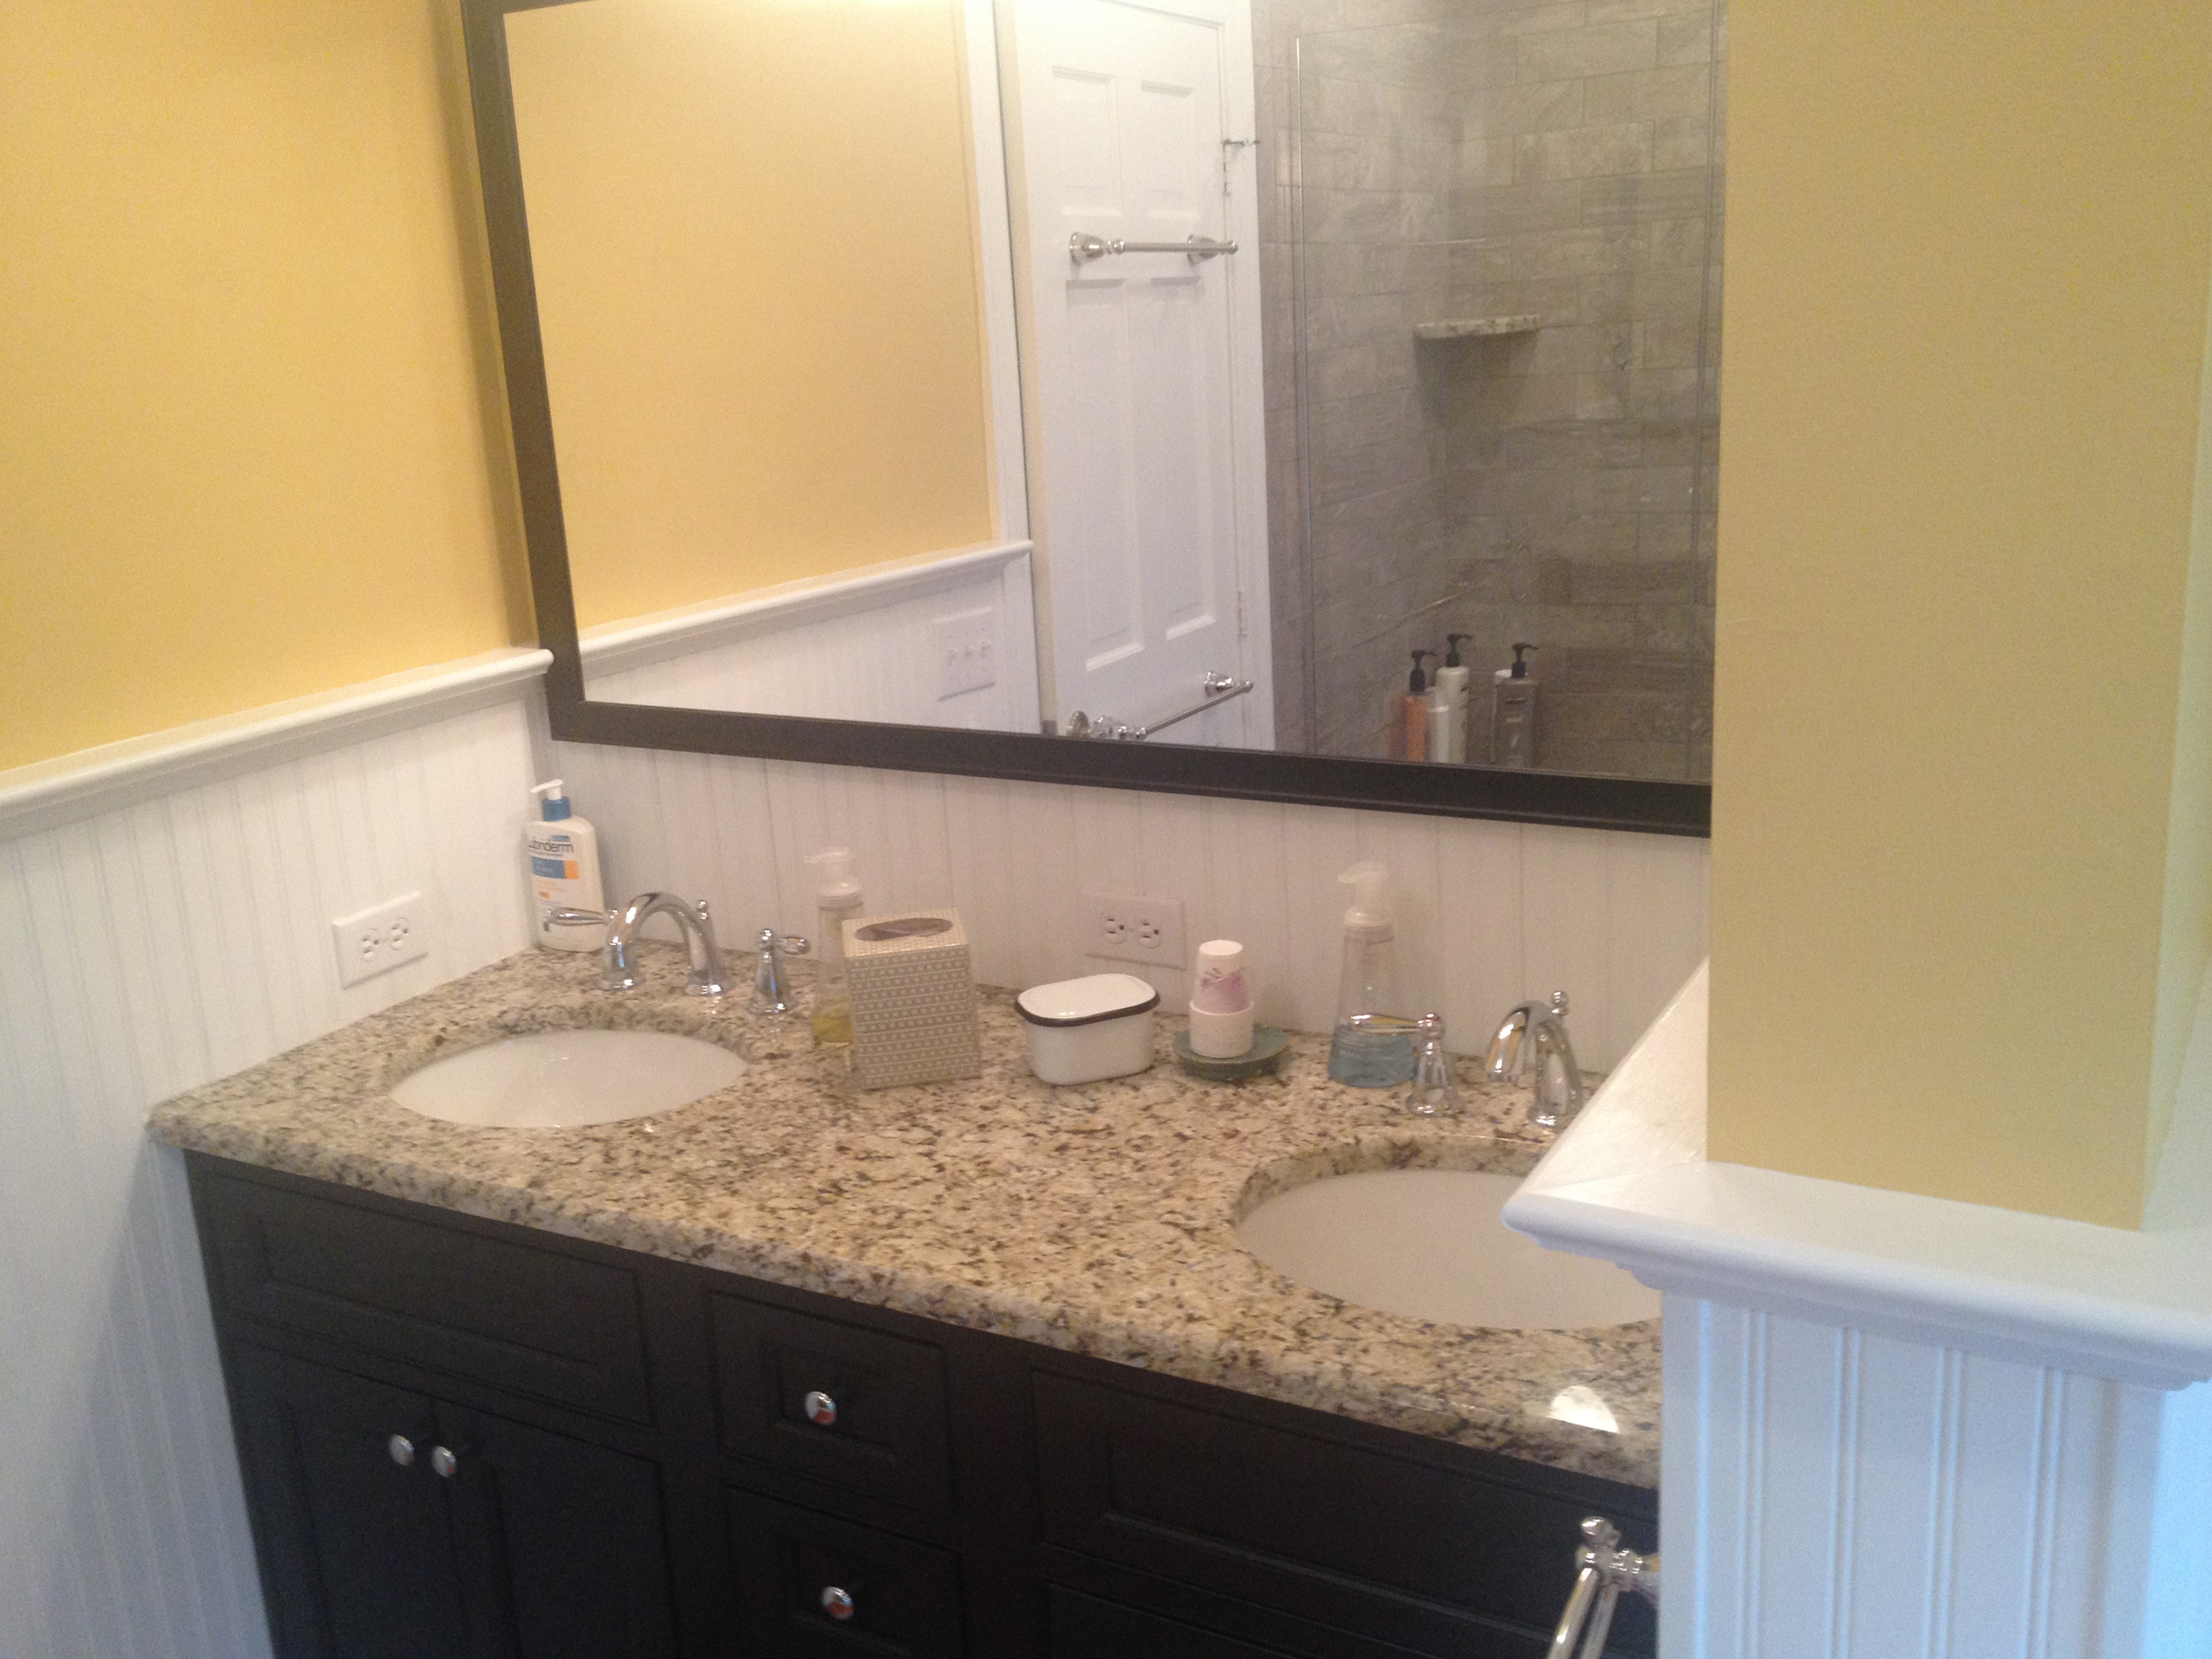 The vanity countertop matches the shower seat.